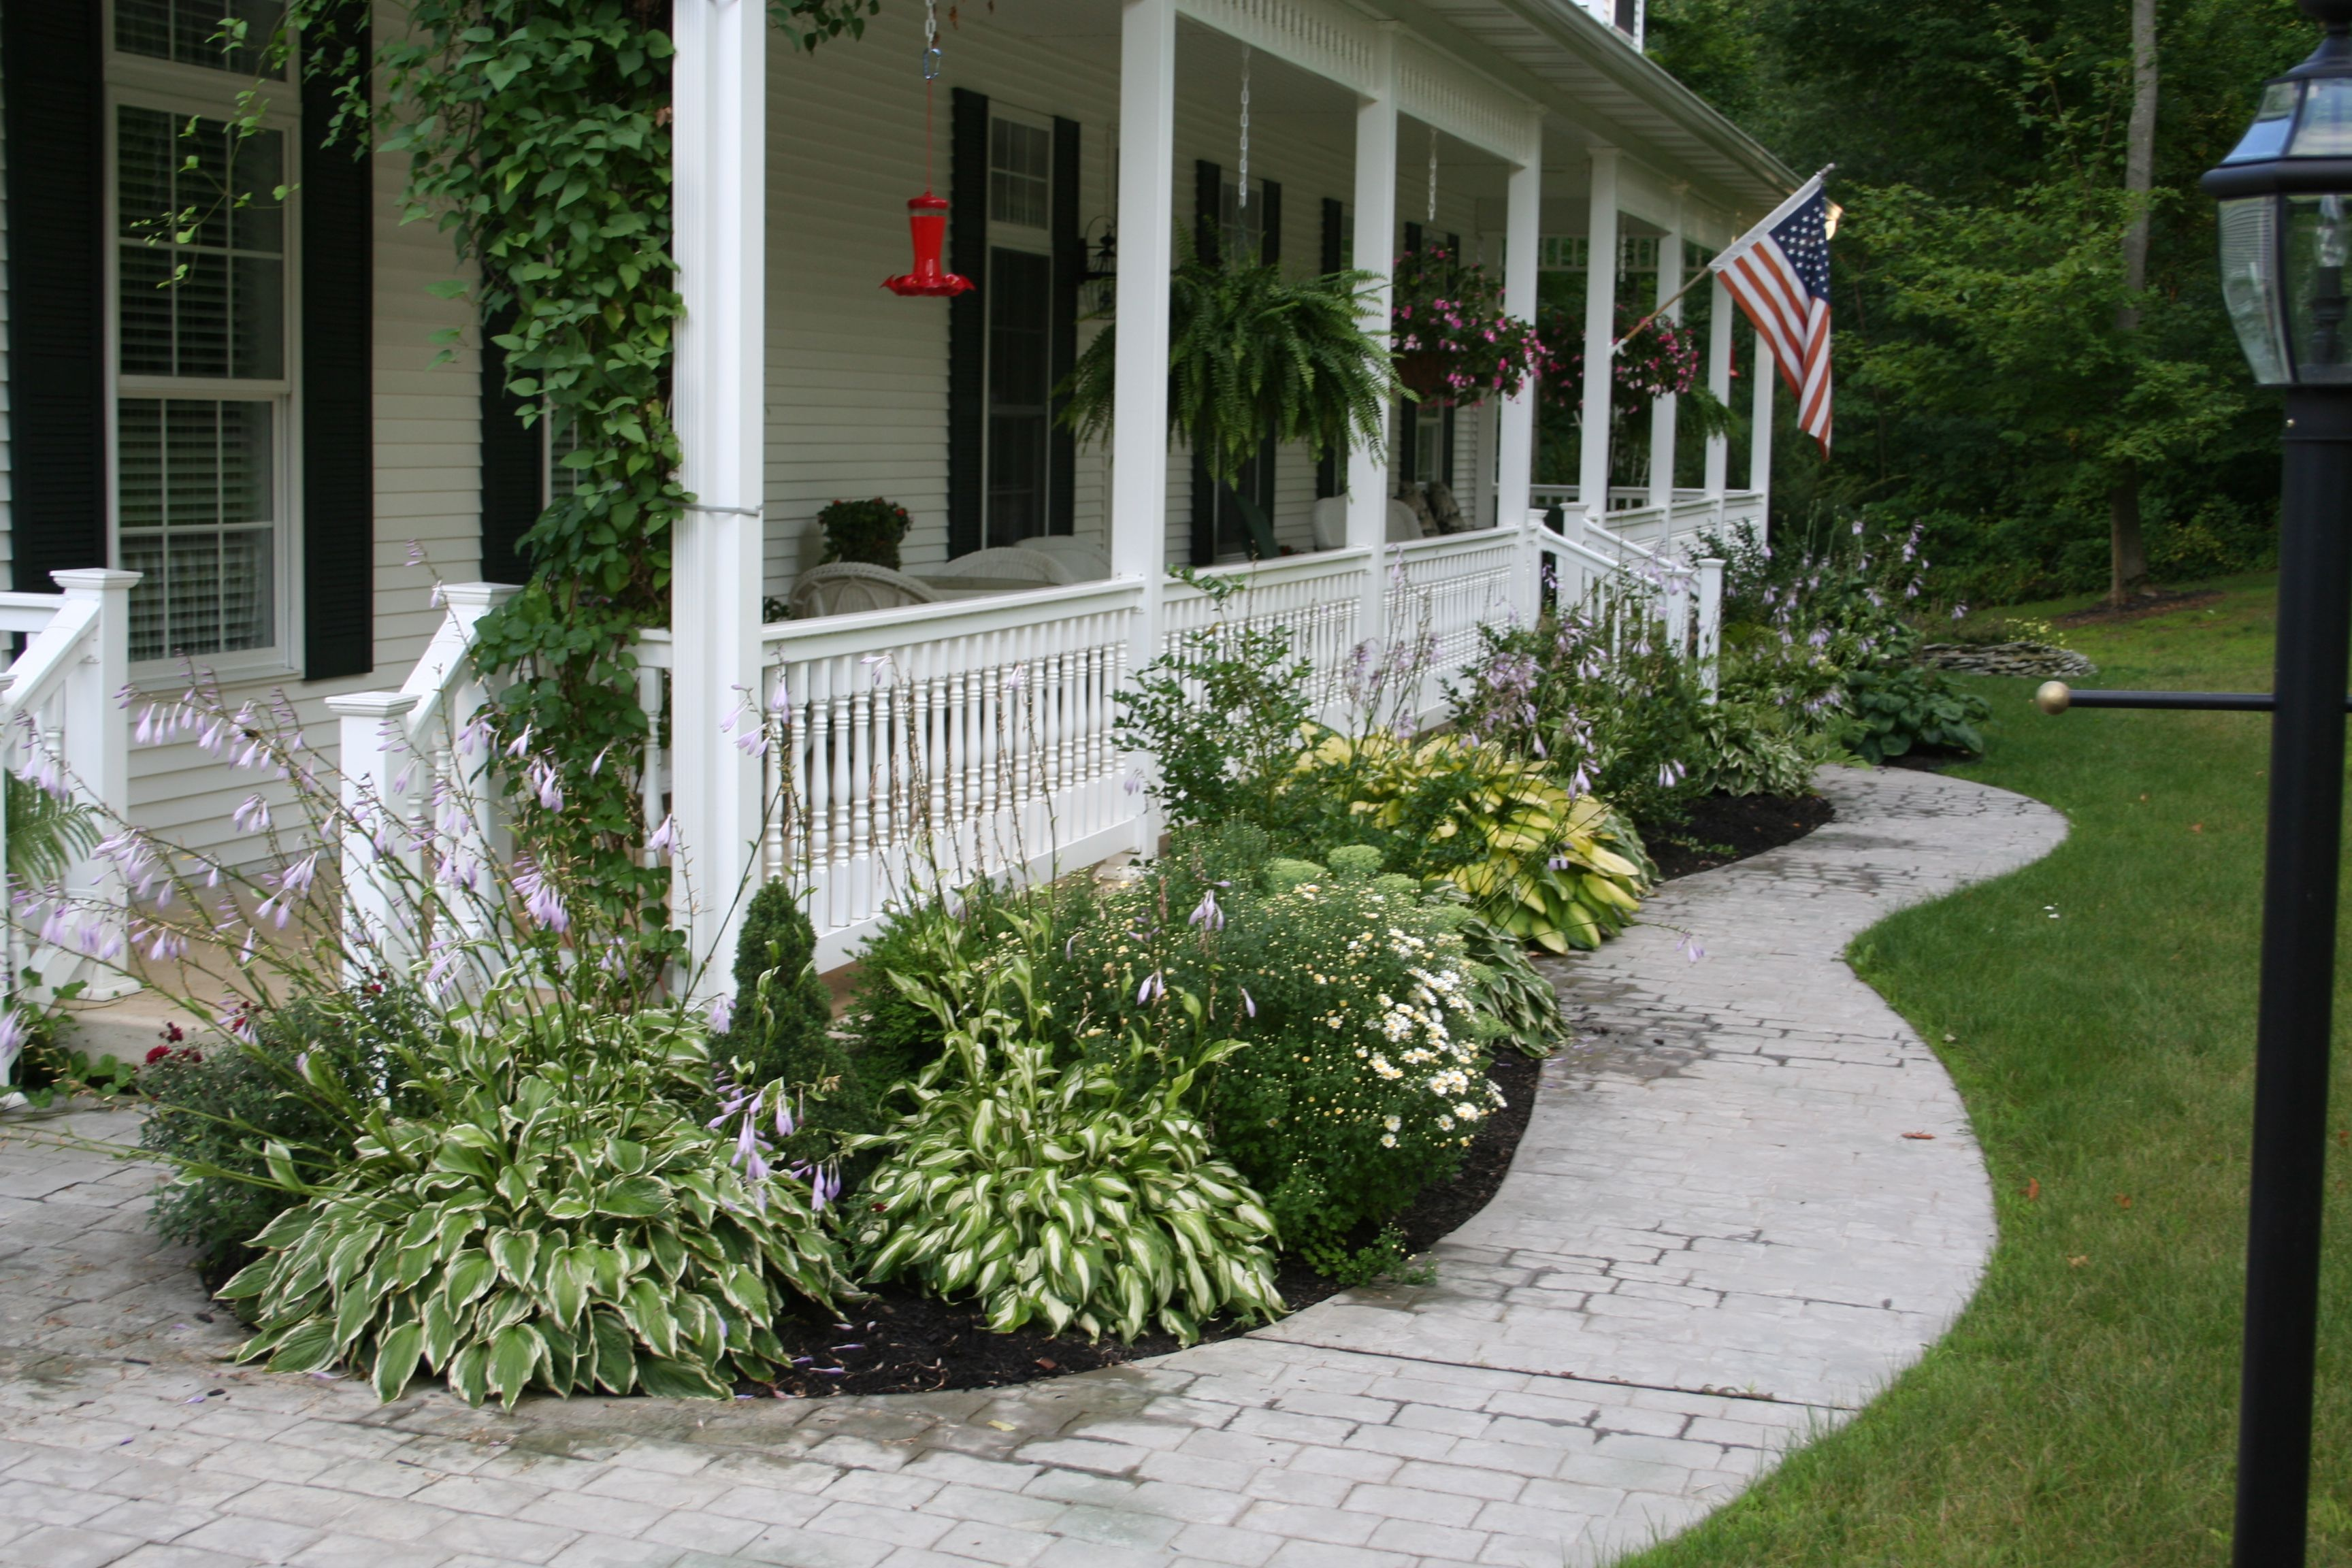 Landscaping Ideas For A House With A Front Porch : Landscaping for front porch gardening such